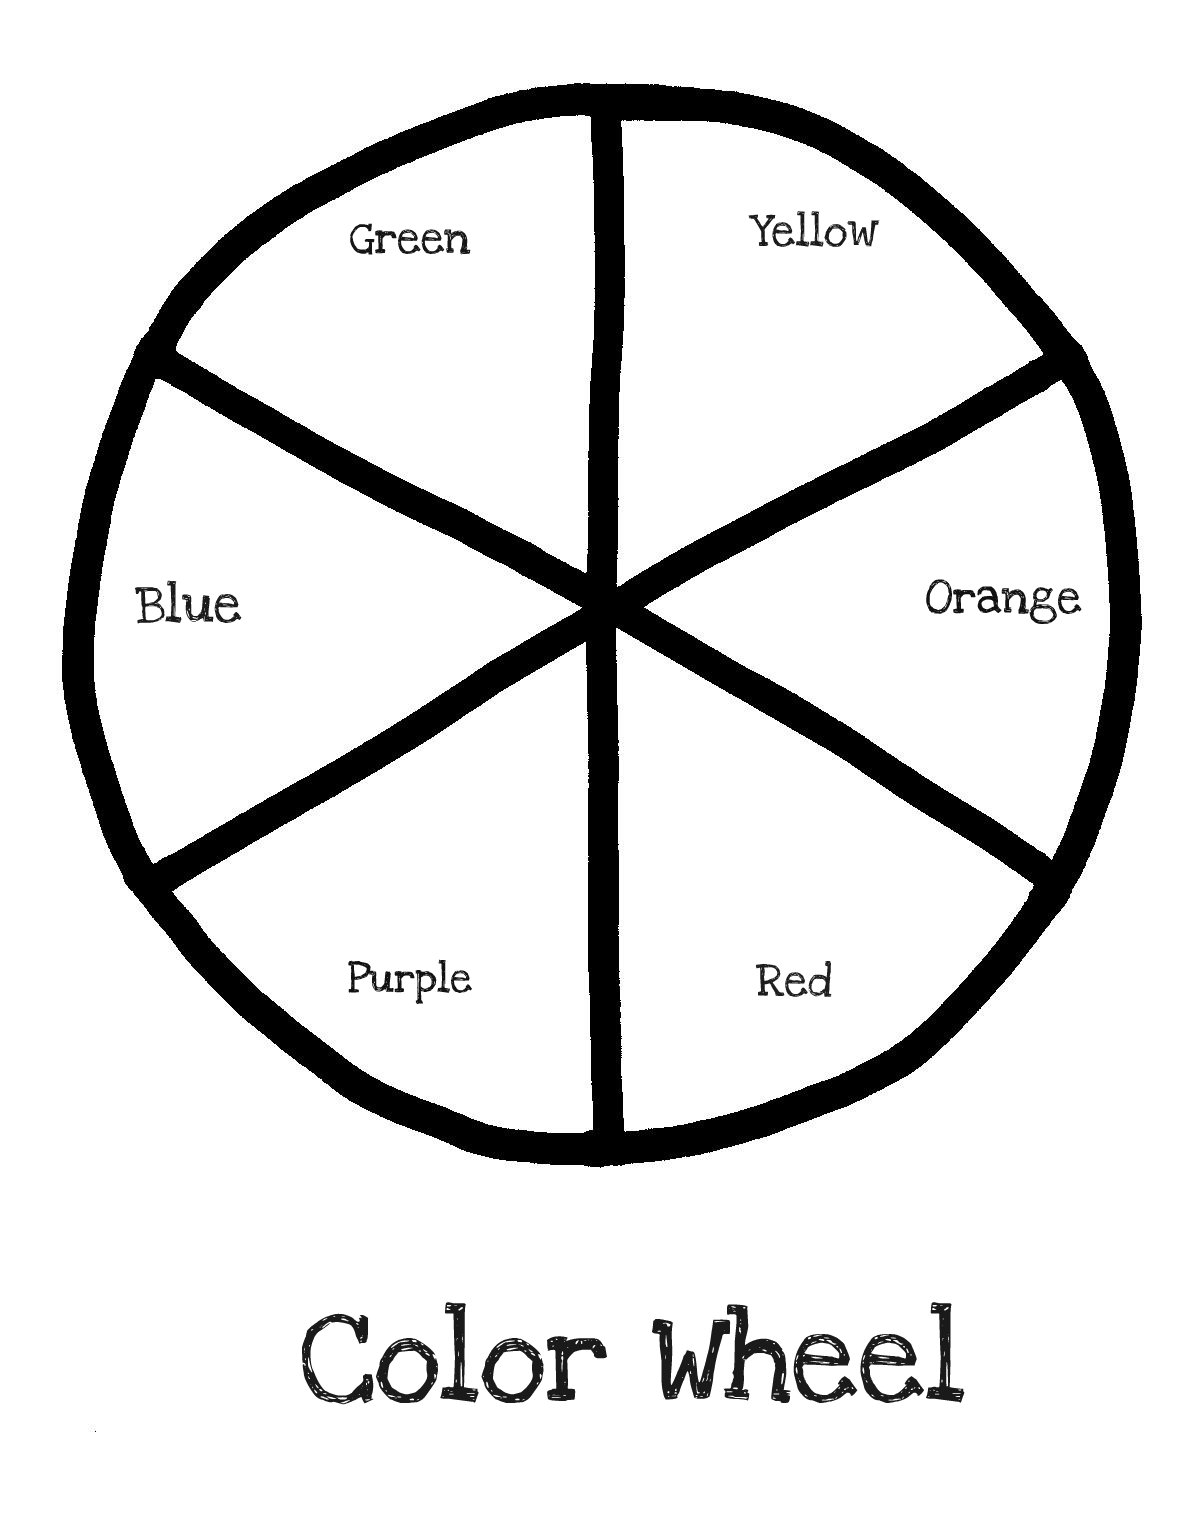 Color theory worksheet for kids - Color Wheel Templates Picture 1200x1520